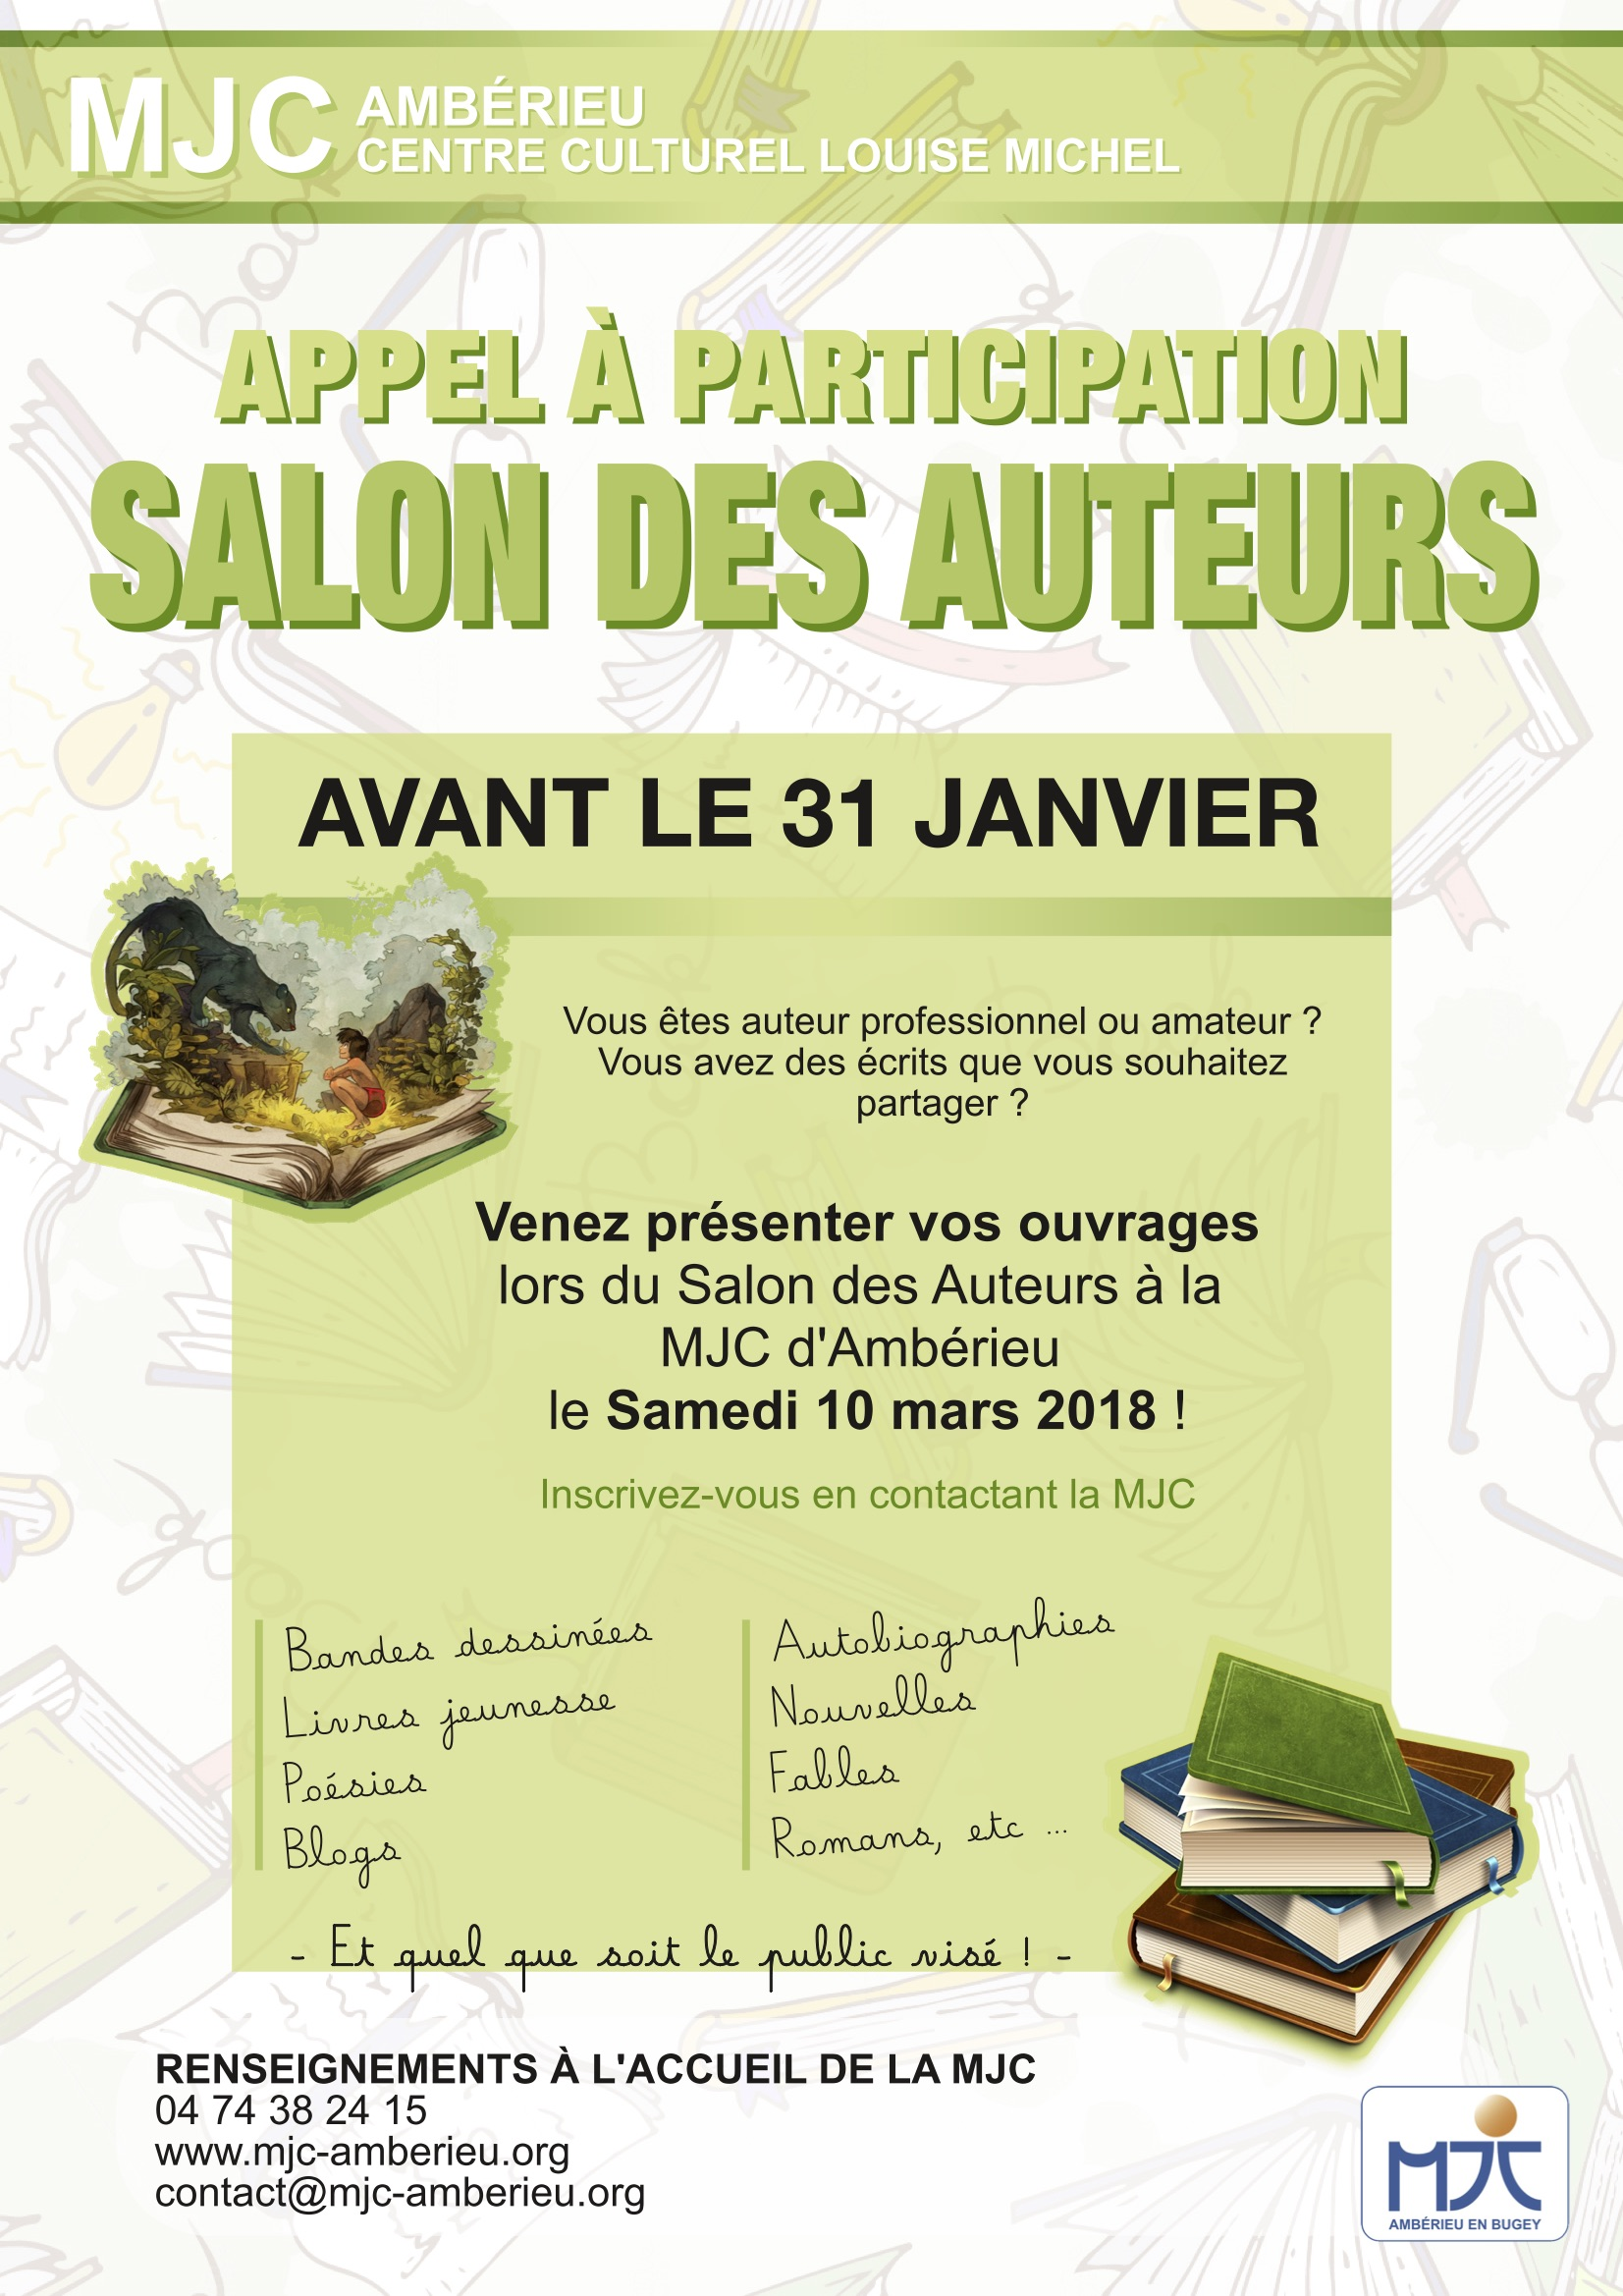 Salon des Auteurs Participants